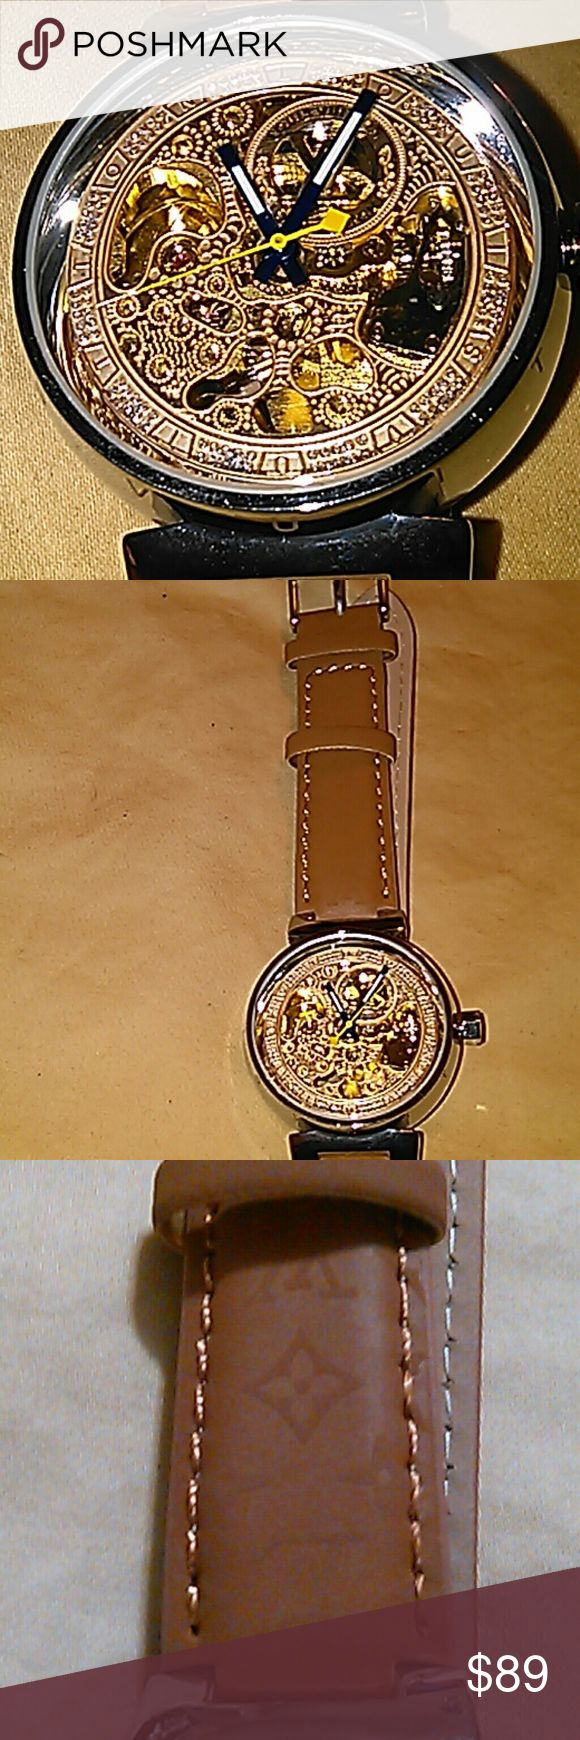 See through Watch This is a brand new watch, price reflects authenticity. Please view ALL photos. Accessories Watches